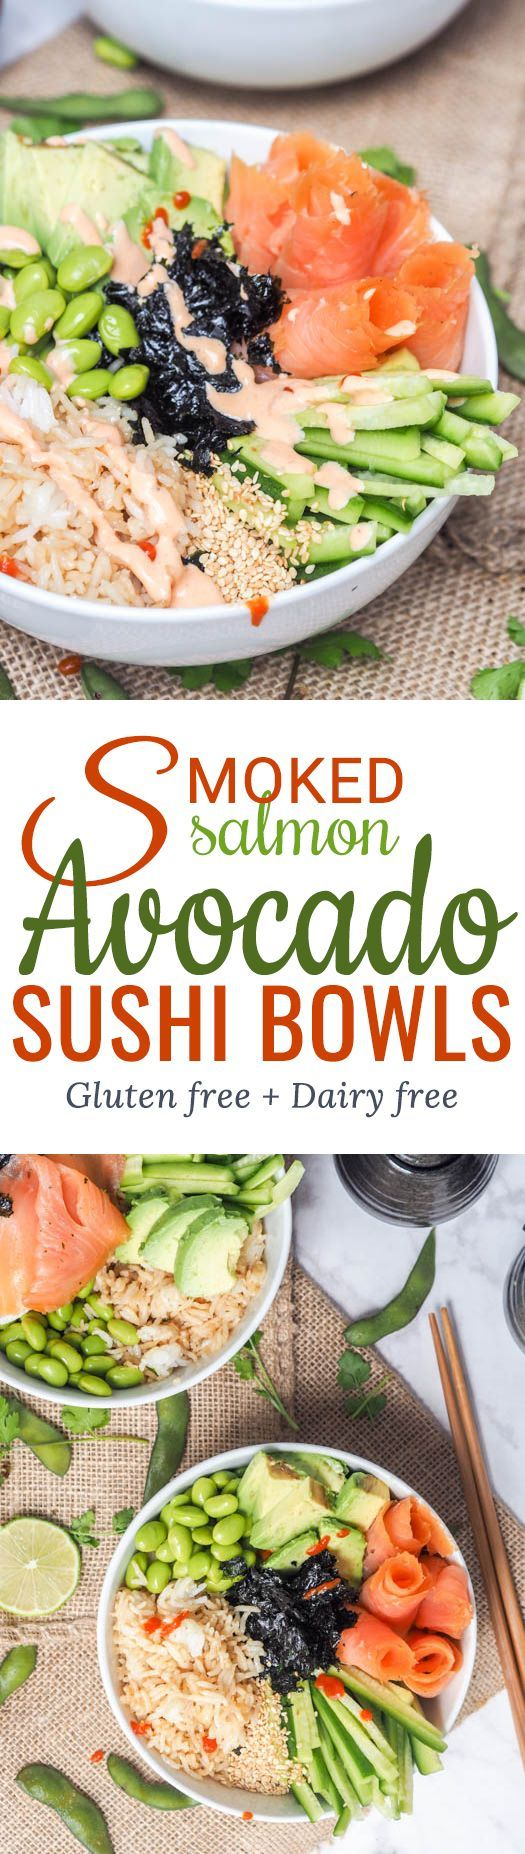 Sushi bowl with smoked salmon, avocado, cucumbers, edamame and rice makes for the perfect Japanese themed meal that is ready in under 30 minutes. All the flavors of a sushi roll but none of the fuss. Gluten Free and Dairy Free too.